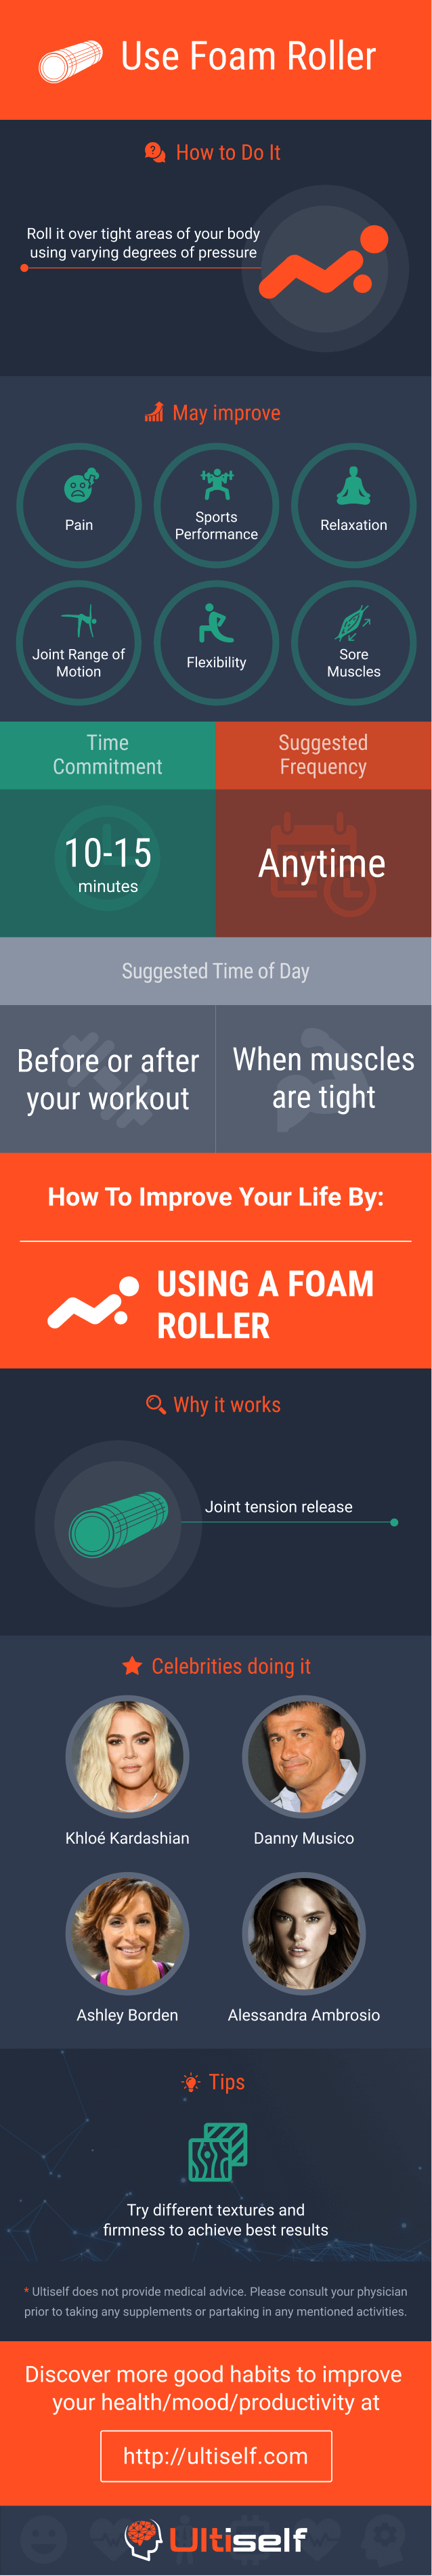 Use Foam Roller infographic